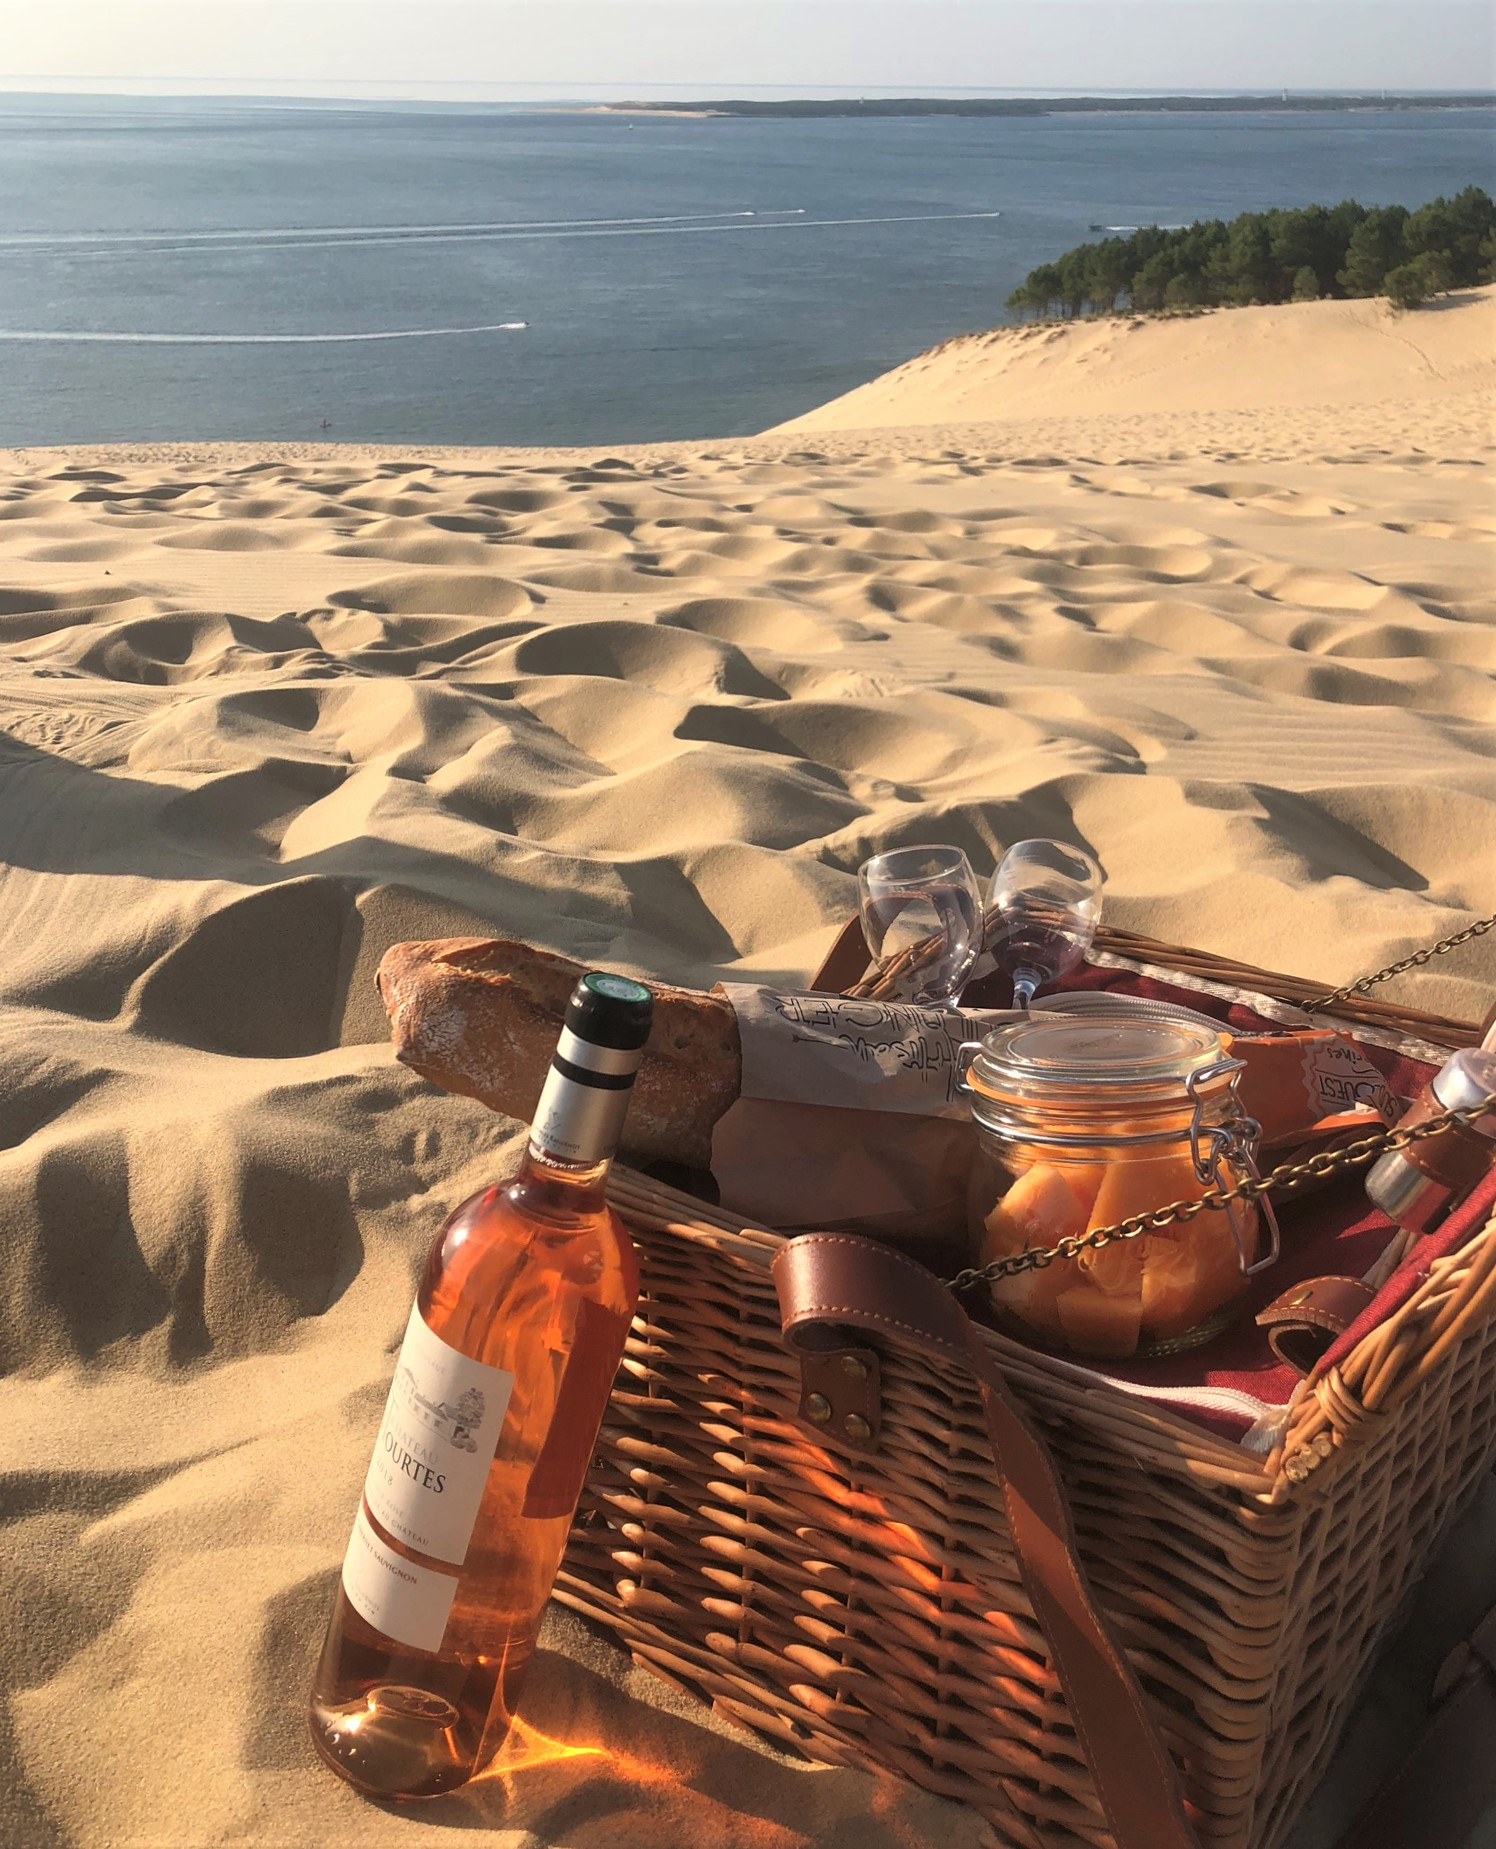 Picnic with local delicacies in a remarkable setting